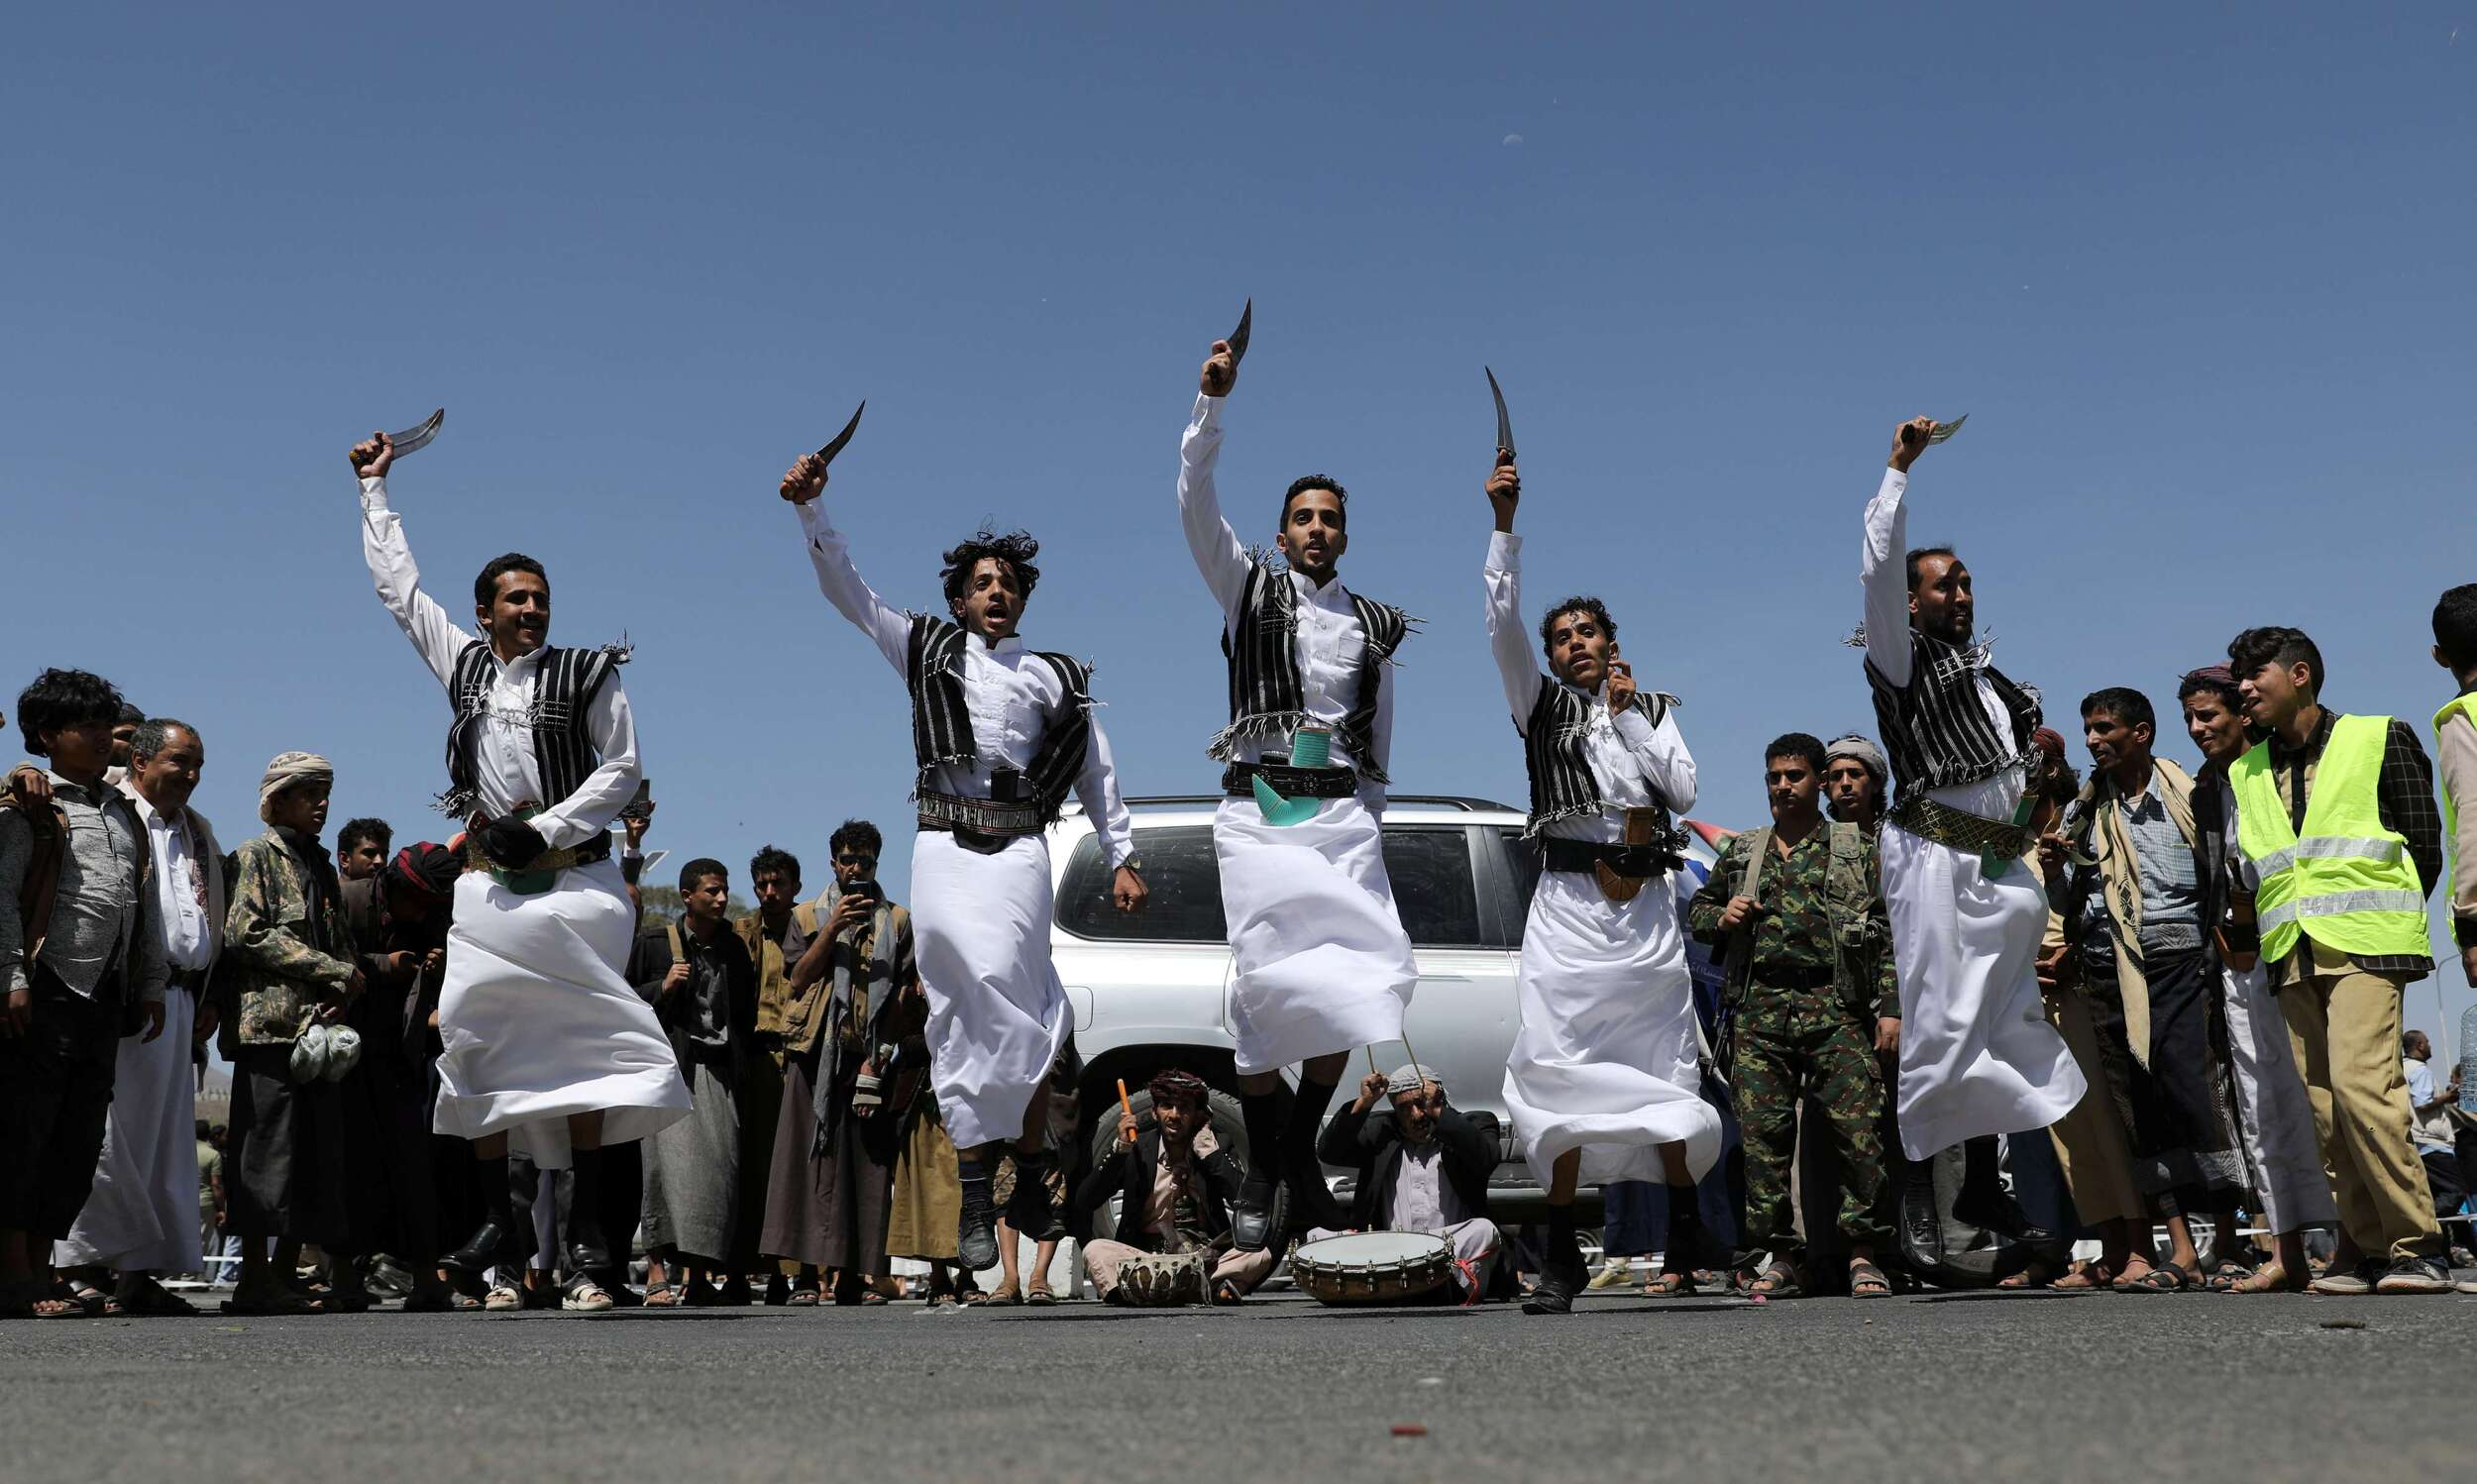 Houthi supporters perform the traditional Baraa dance during a ceremony held to collect supplies for Houthi fighters in Sanaa, Yemen September 22, 2019. (Reuters)